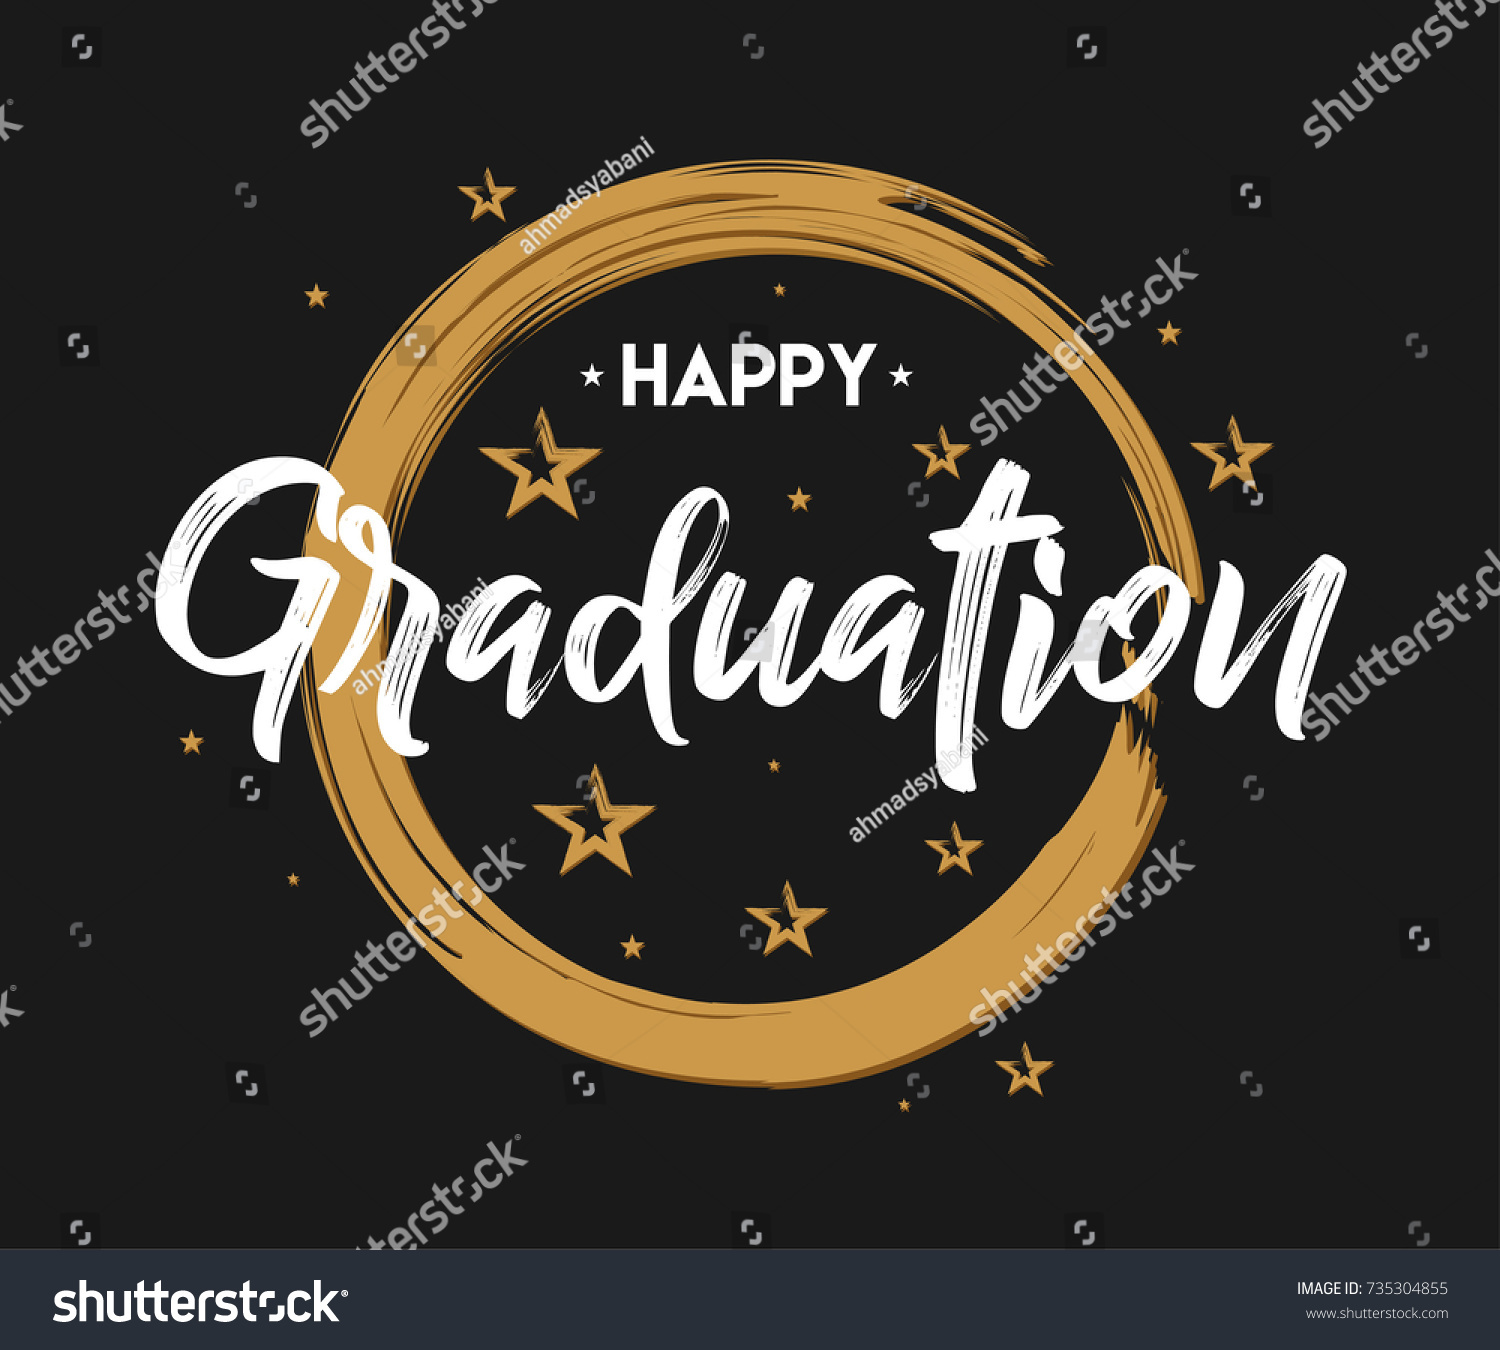 Happy Graduation Vintage Typography Grunge Handwritten Stock ...